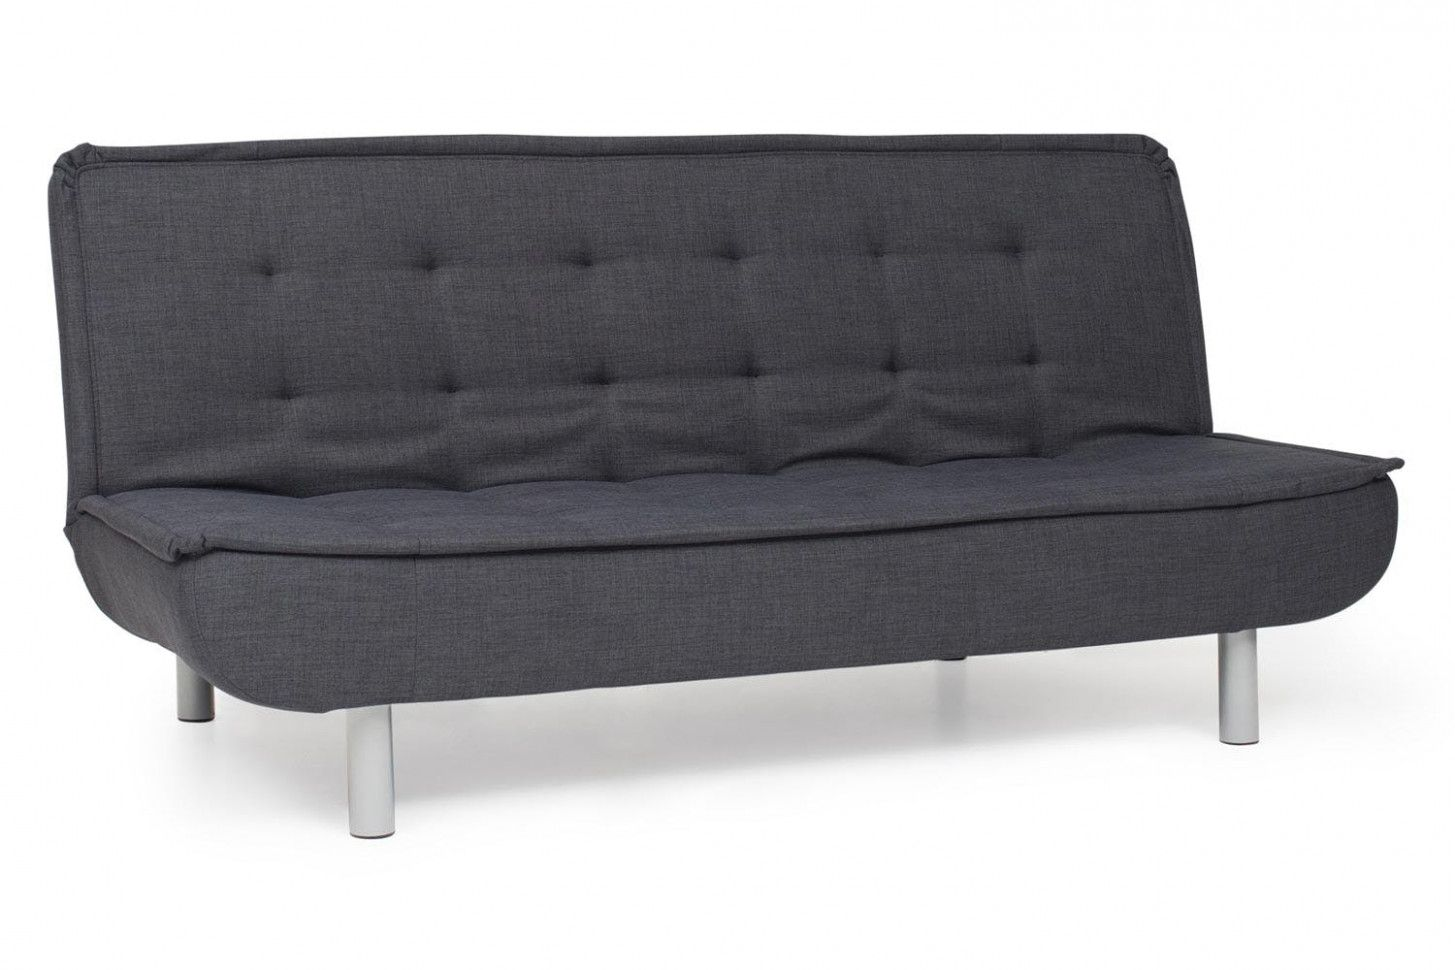 Single Chair Sofa Beds Uk Sofa bed uk, Single sofa chair